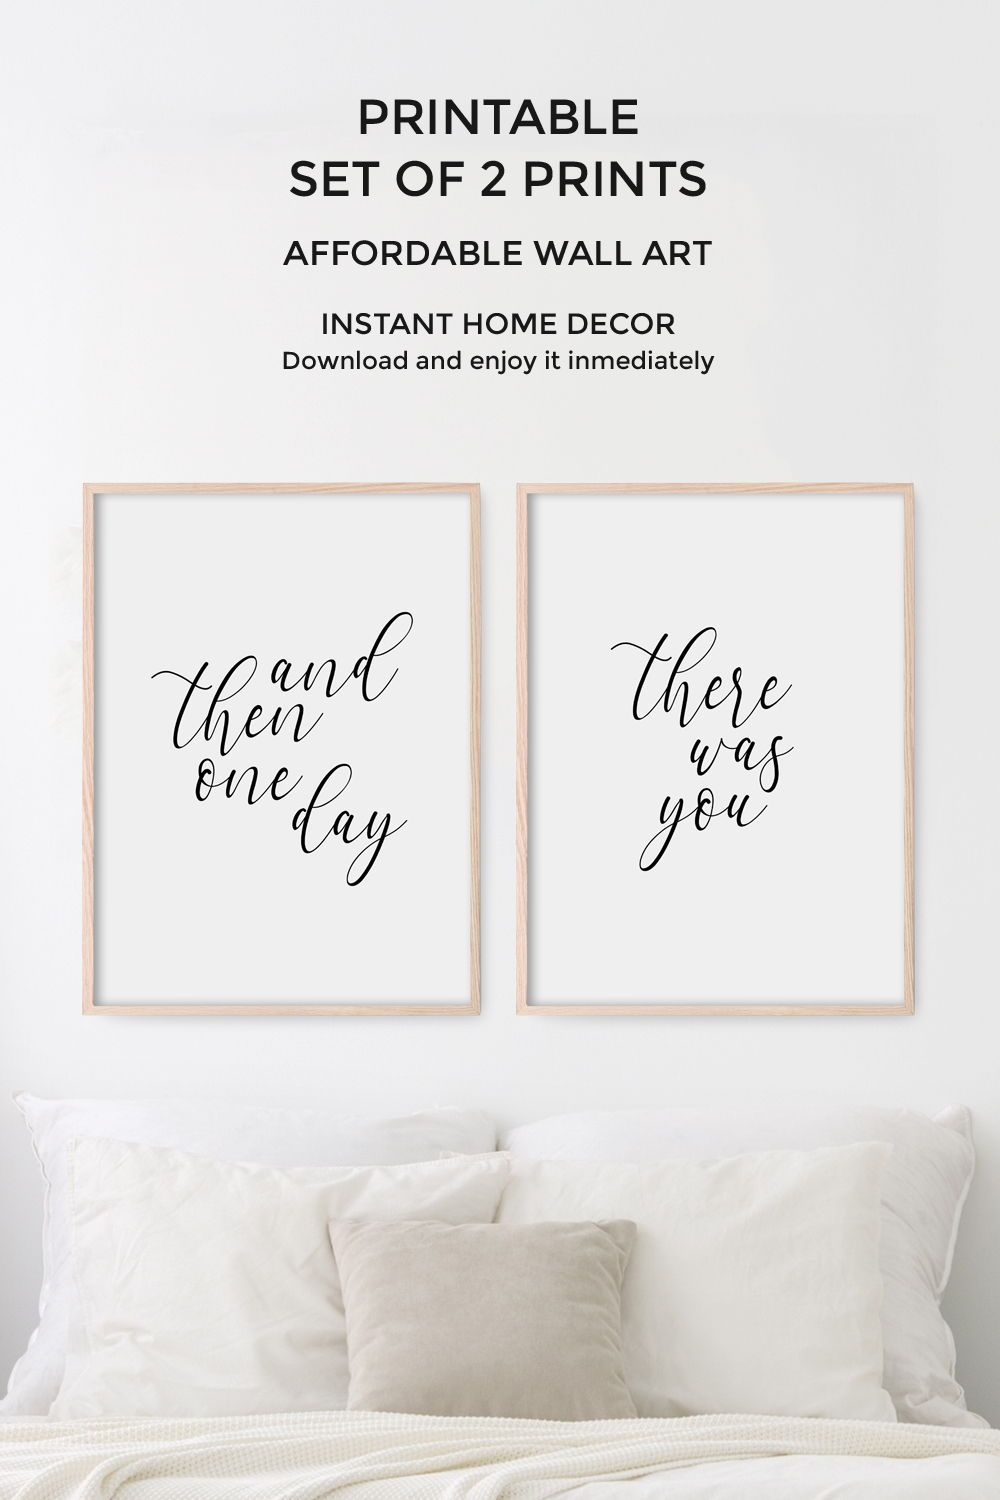 Bedroom Wall Decor Set Of 2 Prints Love Quote For Bedroom Printable Wall Art And Then One Day Th Wall Decor Bedroom Wall Art Quotes Wall Printables